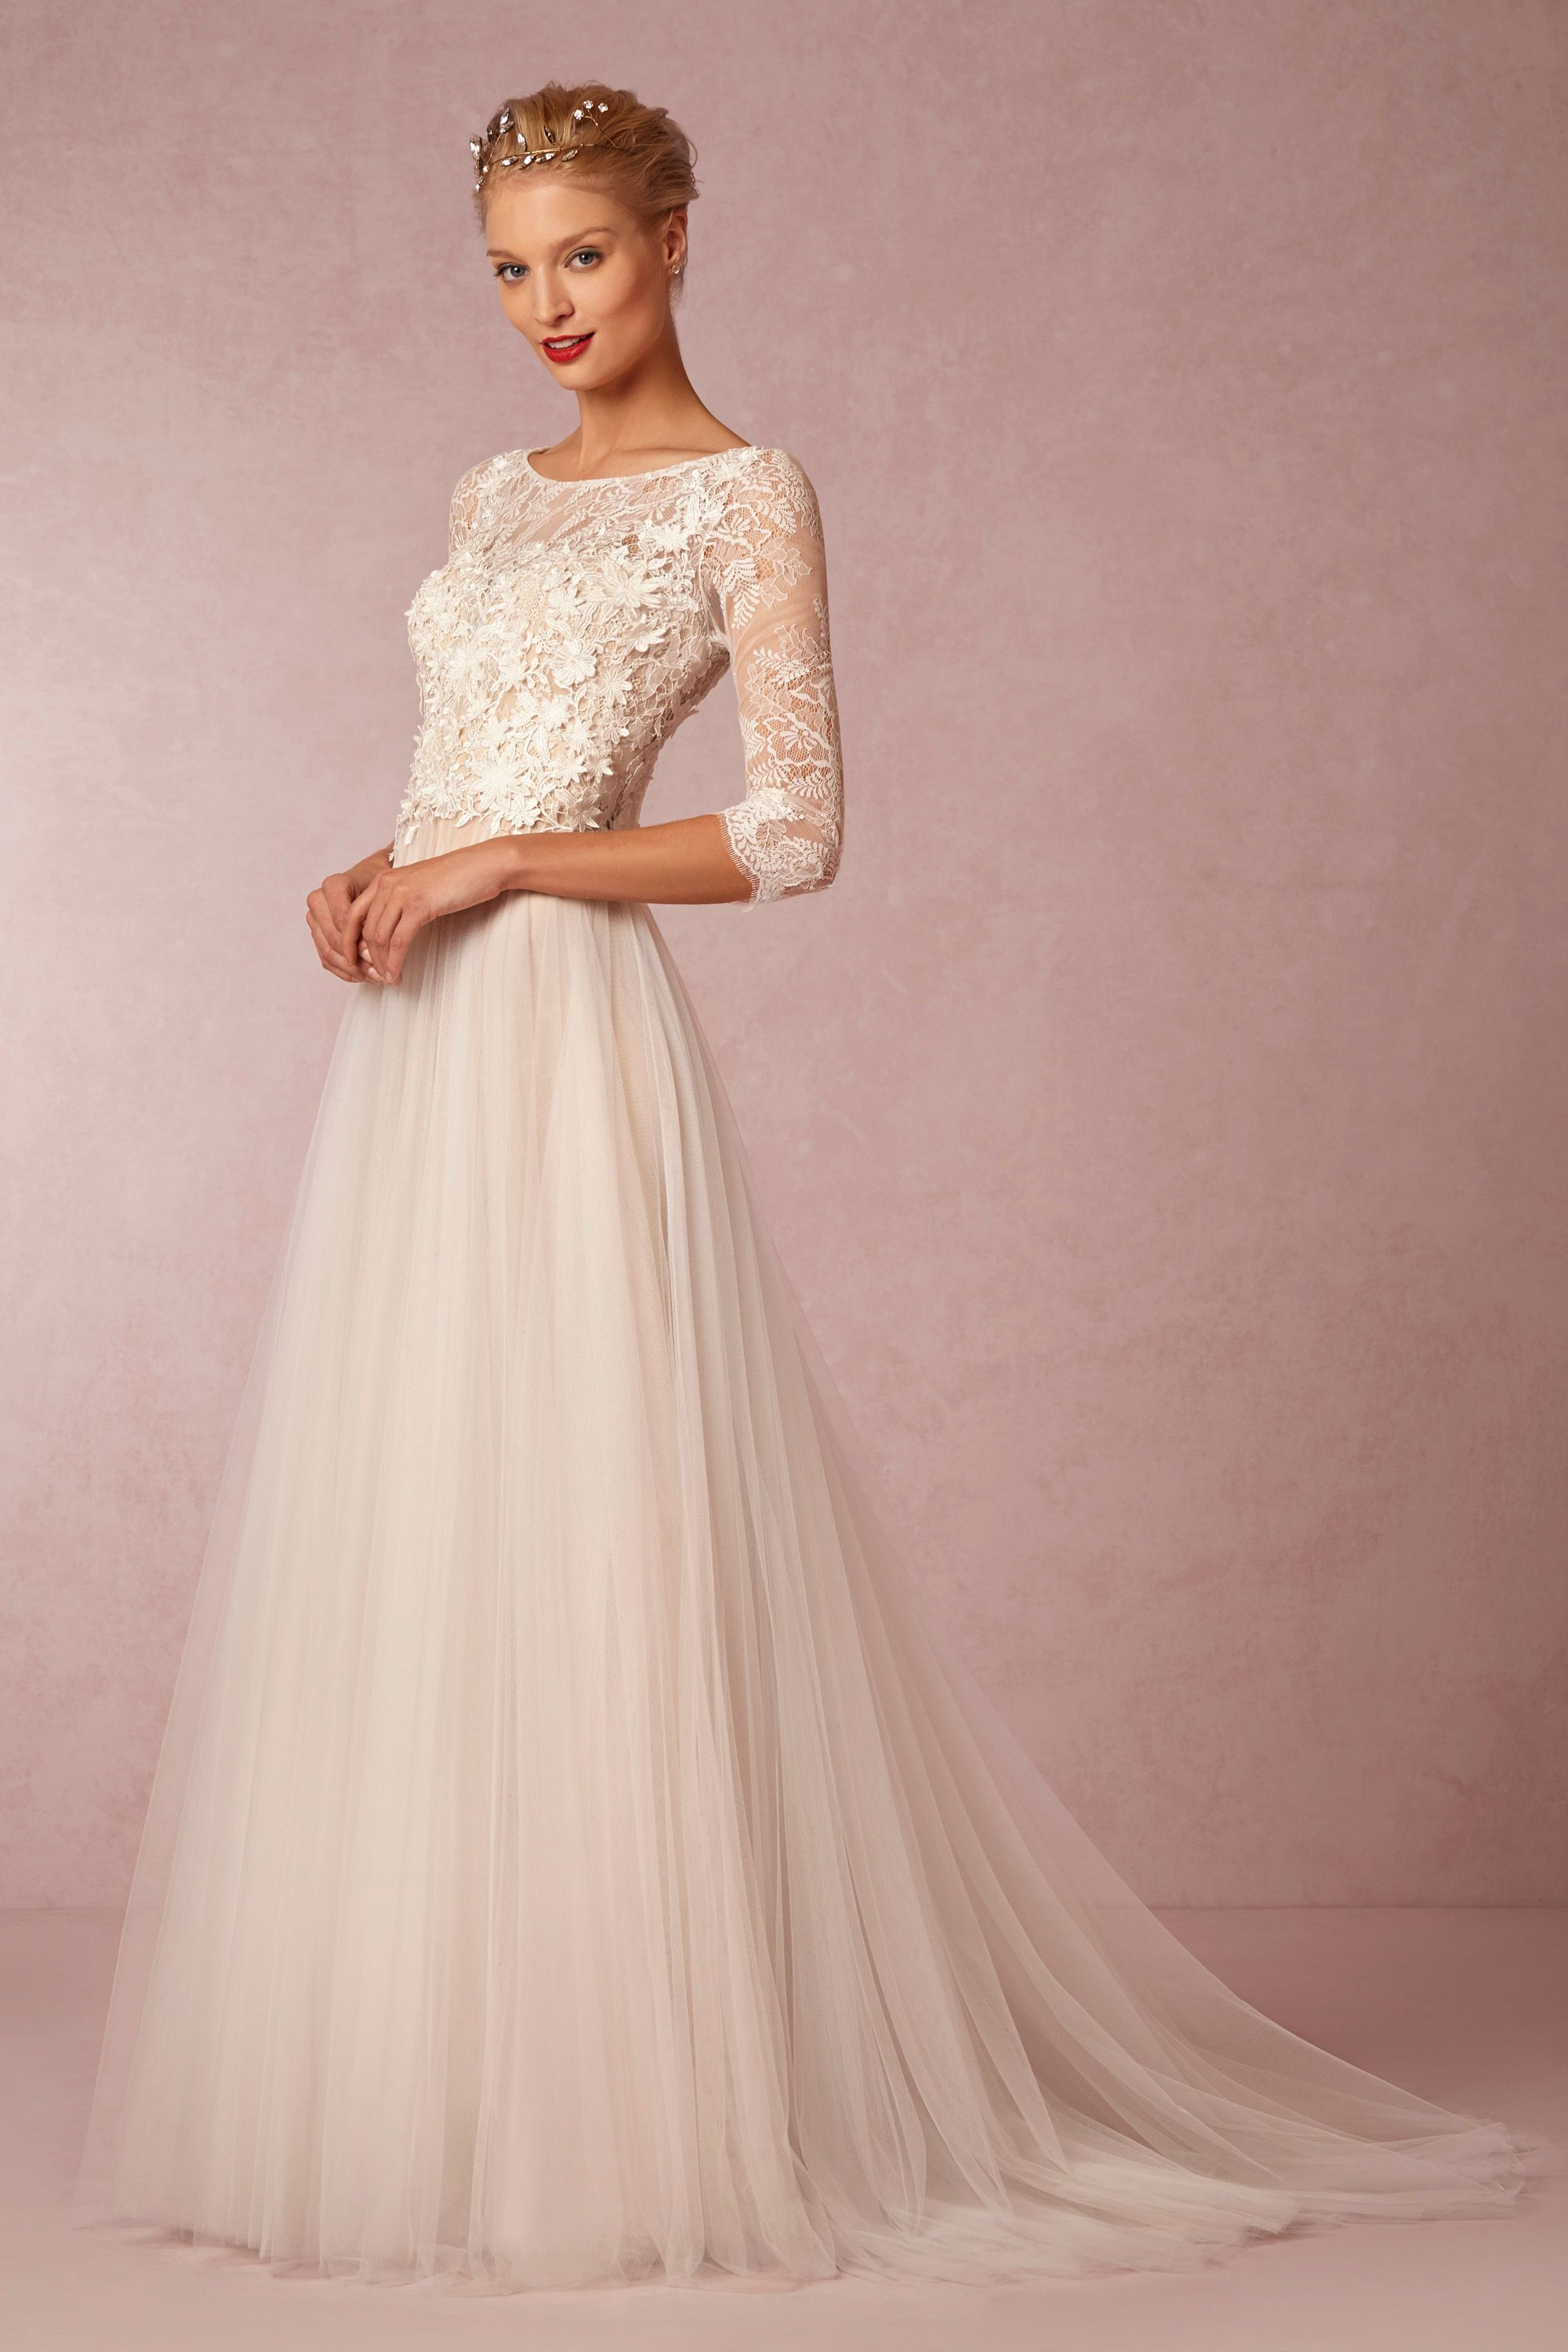 Casual wedding dresses with sleeves  Amelie Gown from BHLDN  Dress  Pinterest  Bhldn Amelie and Gowns